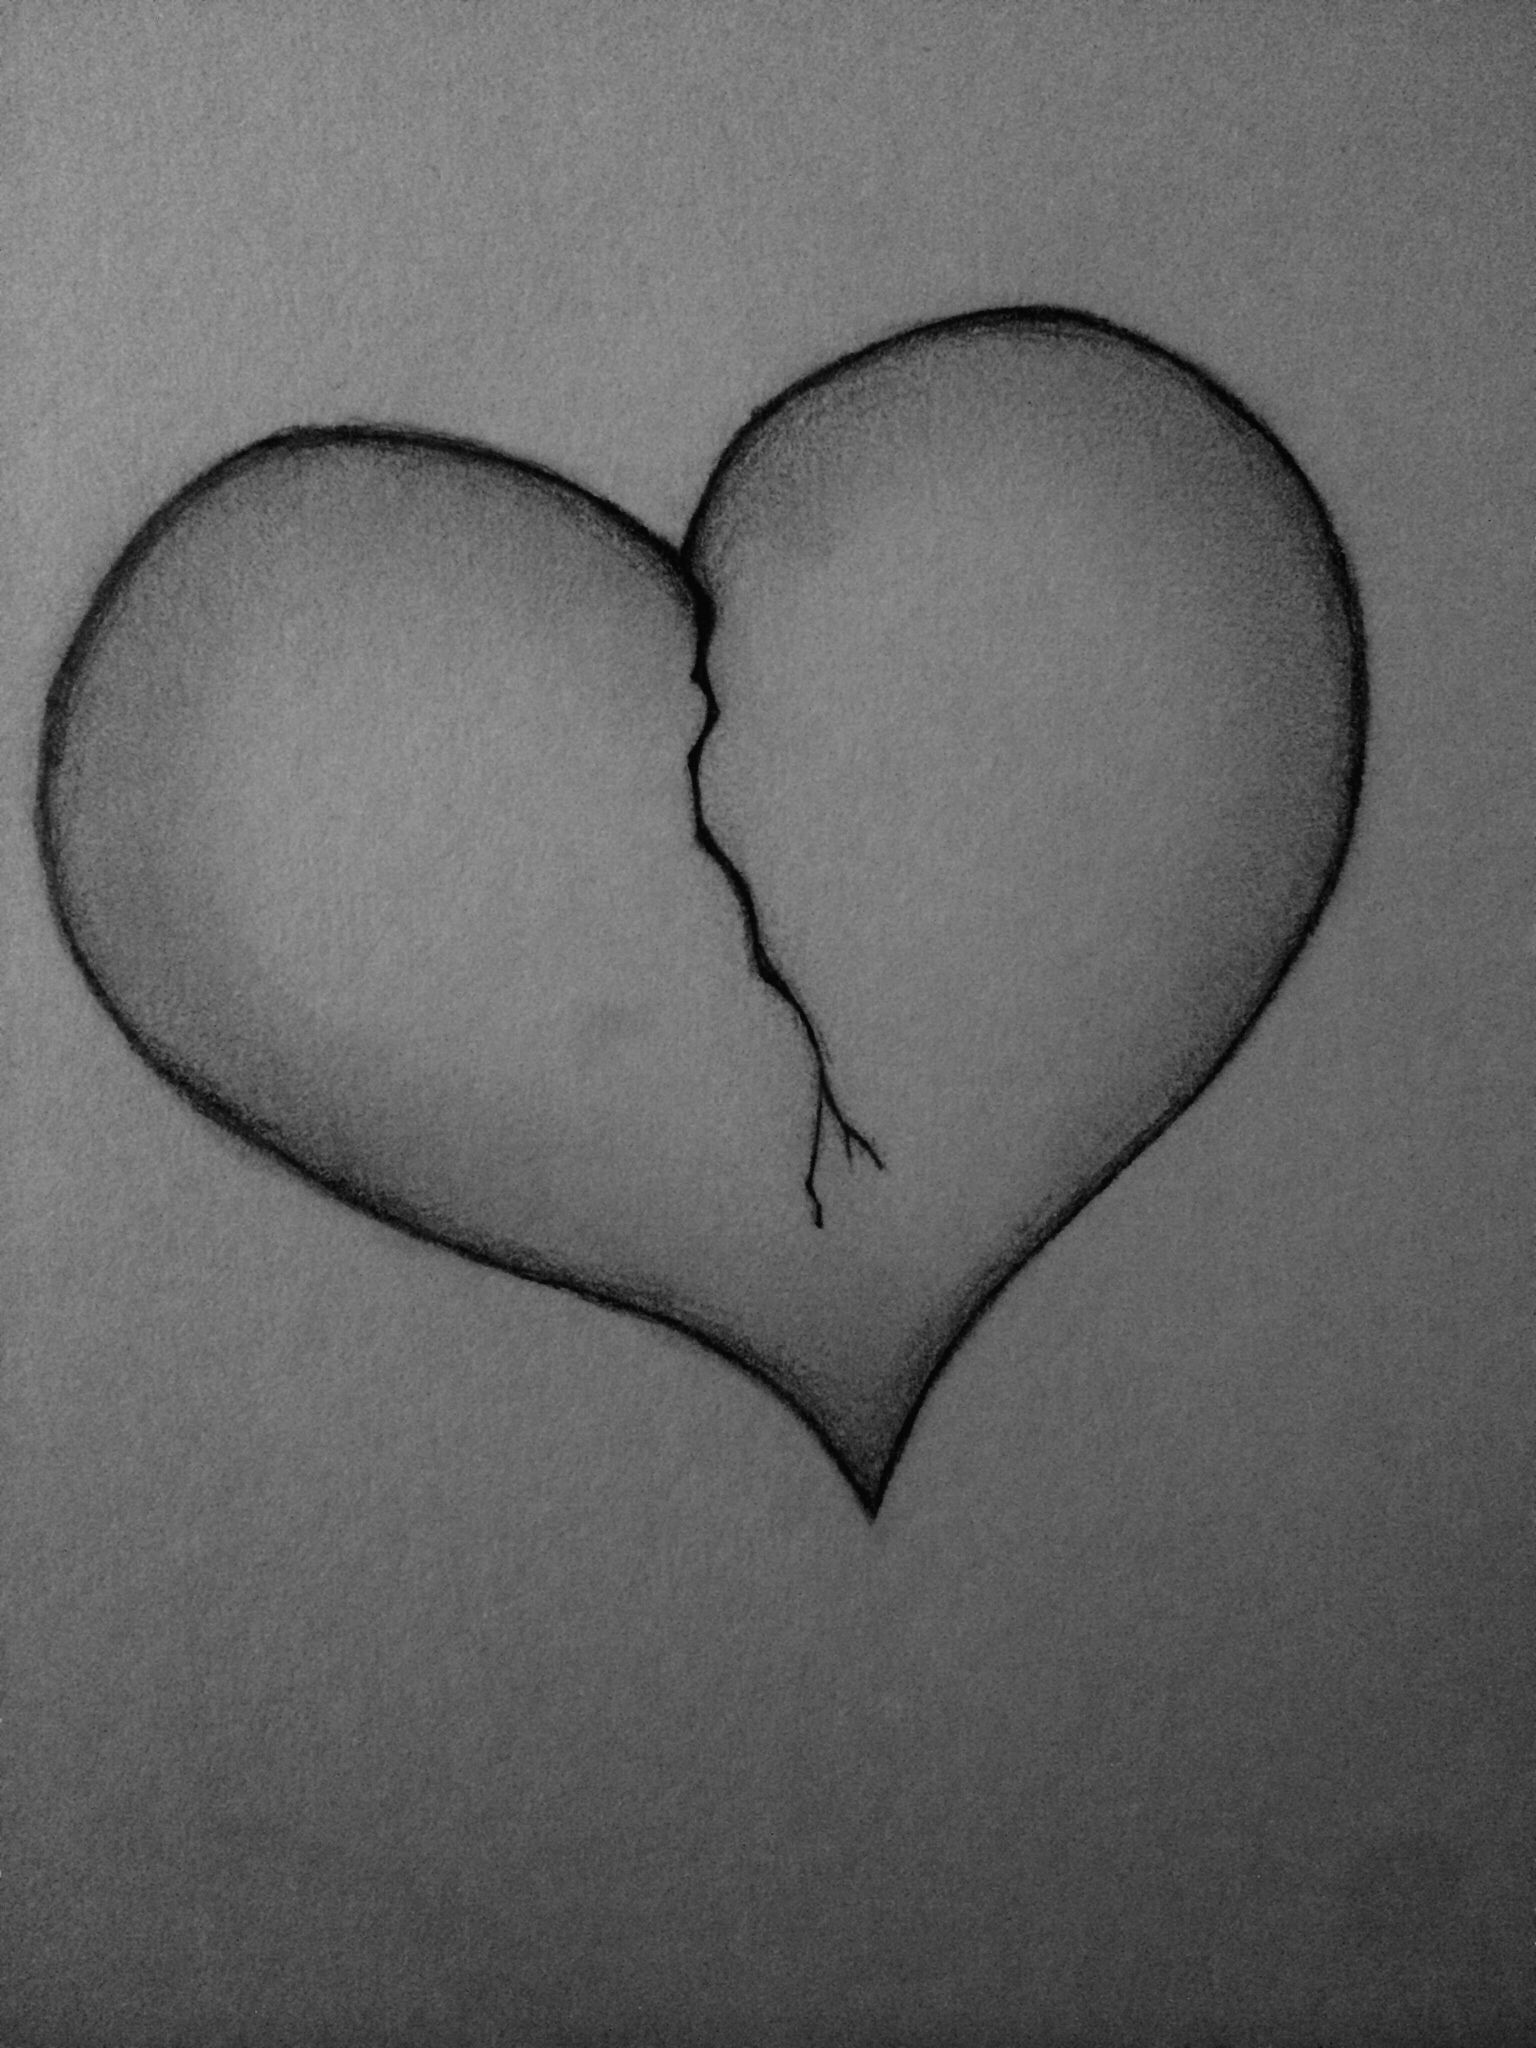 broken heart sketch #drawing #brokenheart | artsy fartsy | pinterest